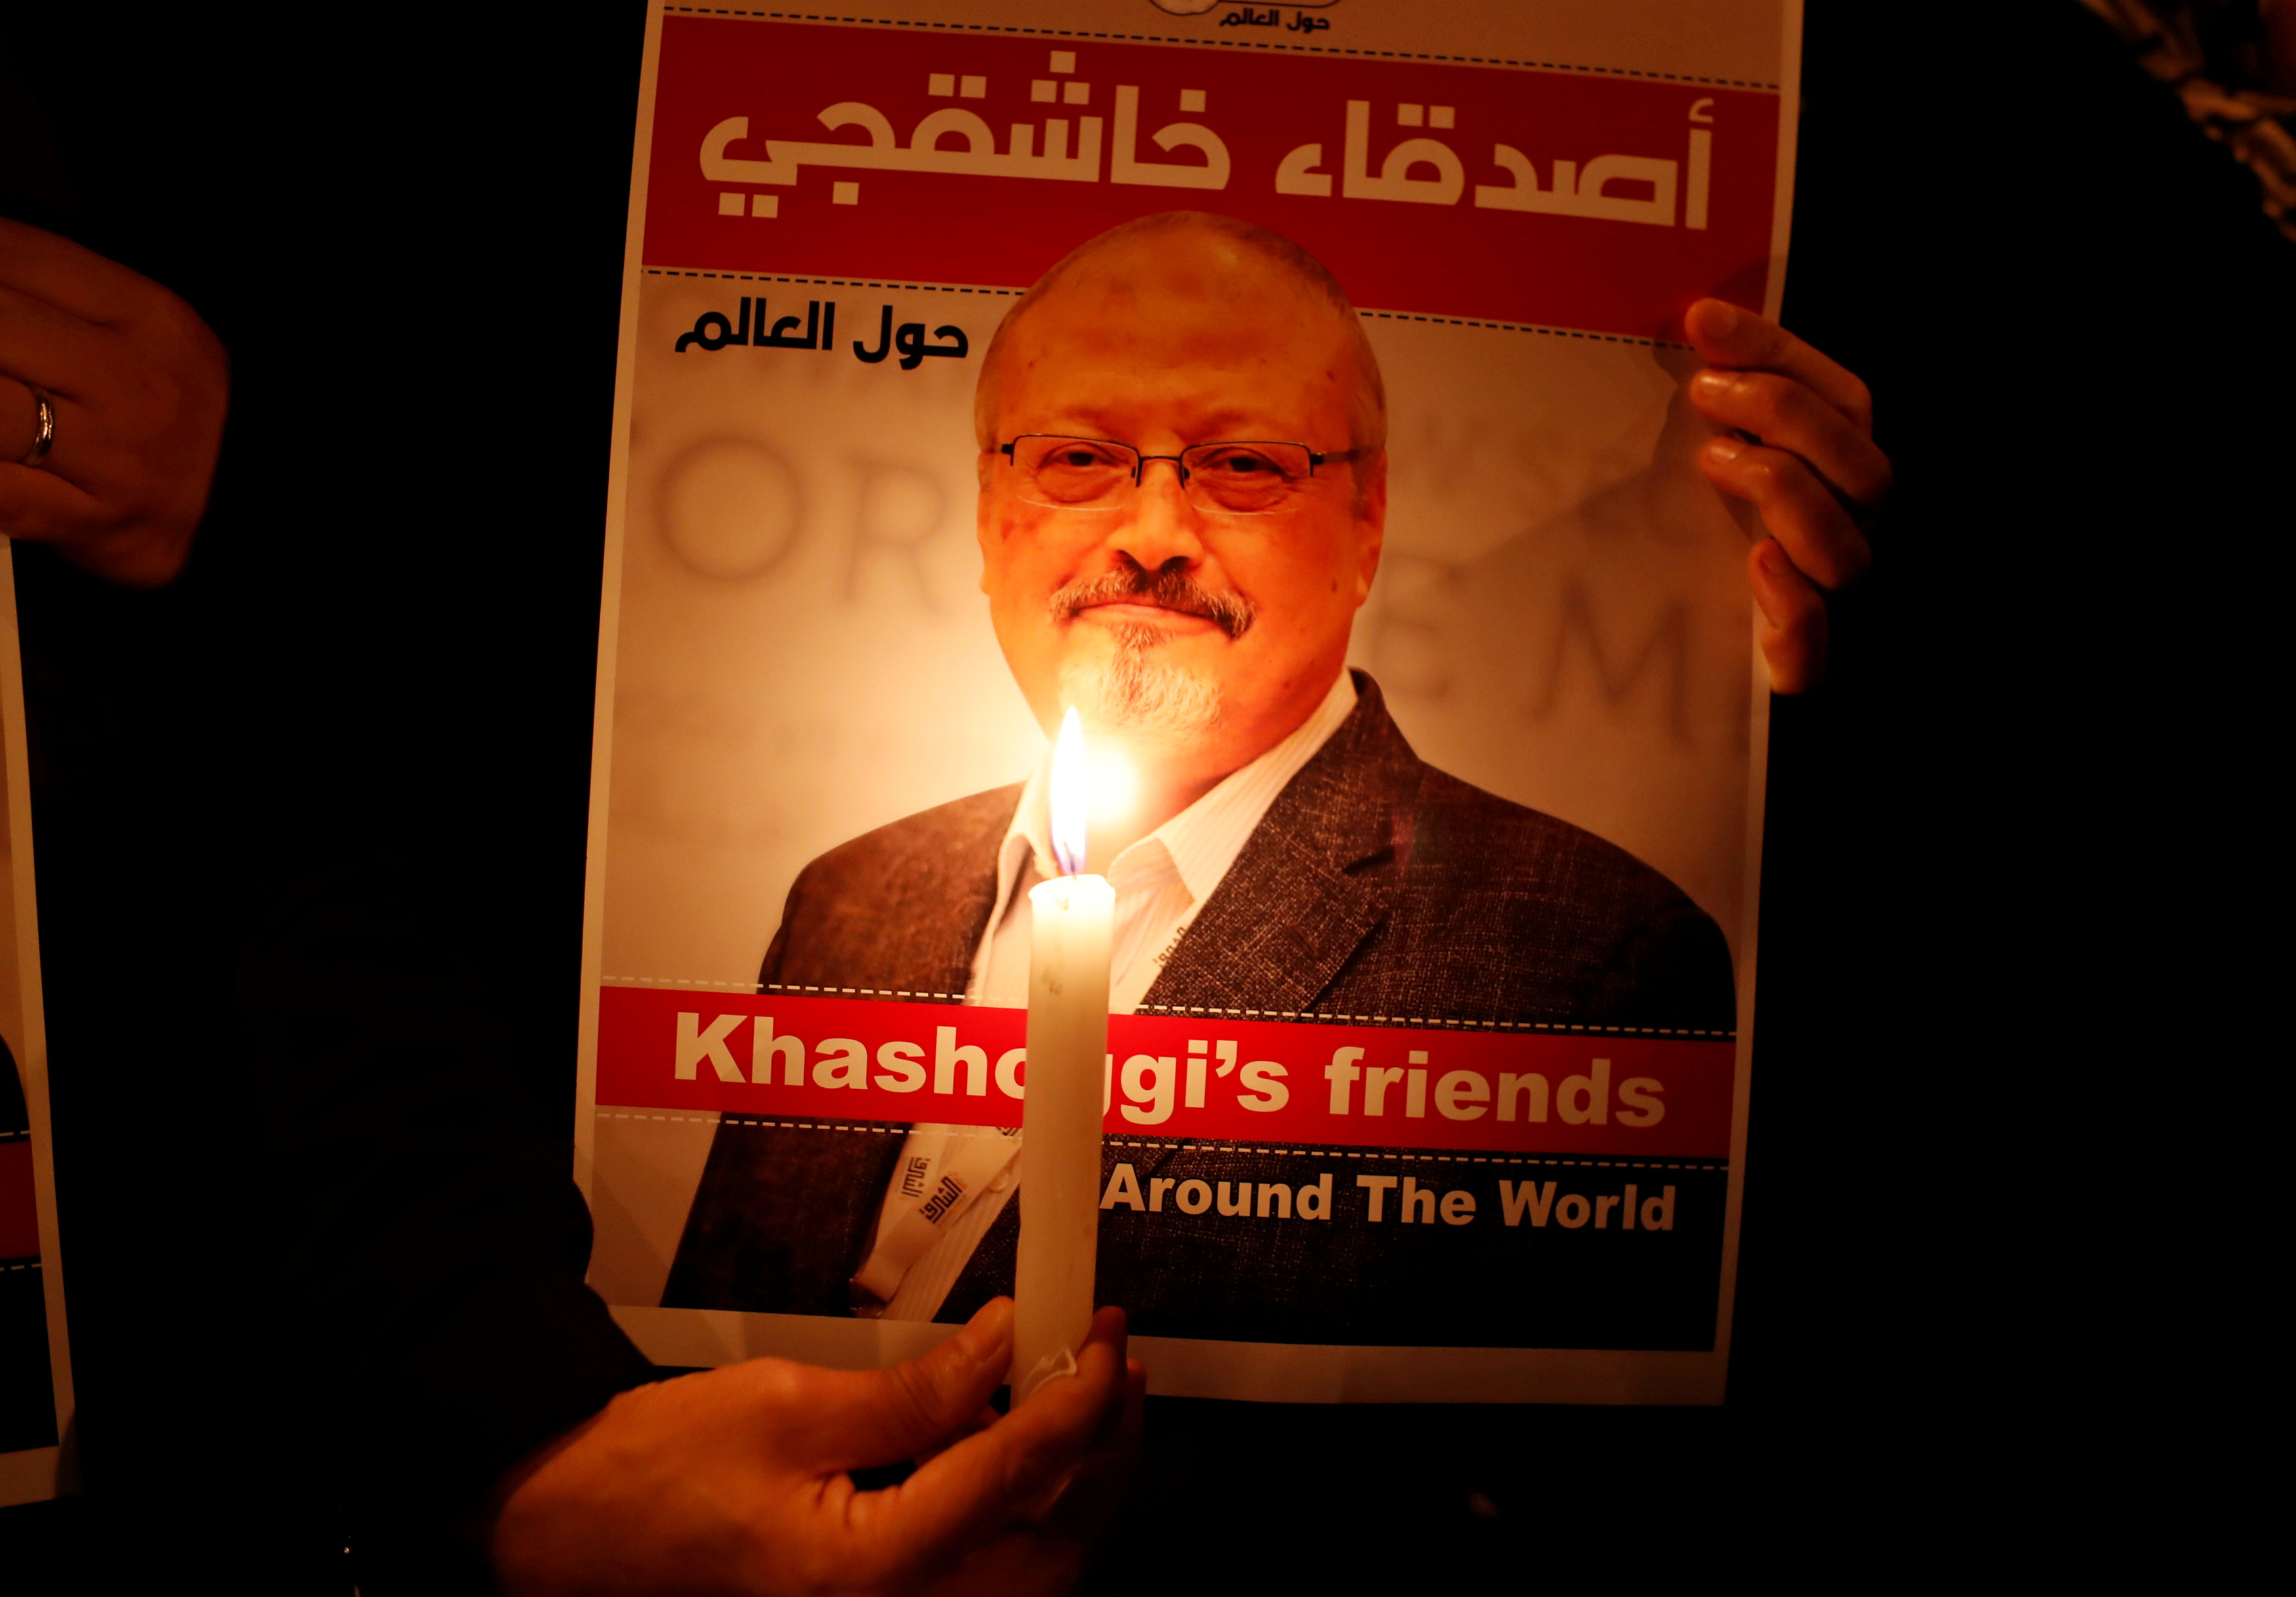 A demonstrator holds a poster with a picture of Saudi journalist Jamal Khashoggi outside the Saudi Arabia consulate in Istanbul, Turkey October 25, 2018. REUTERS/Osman Orsal/File Photo